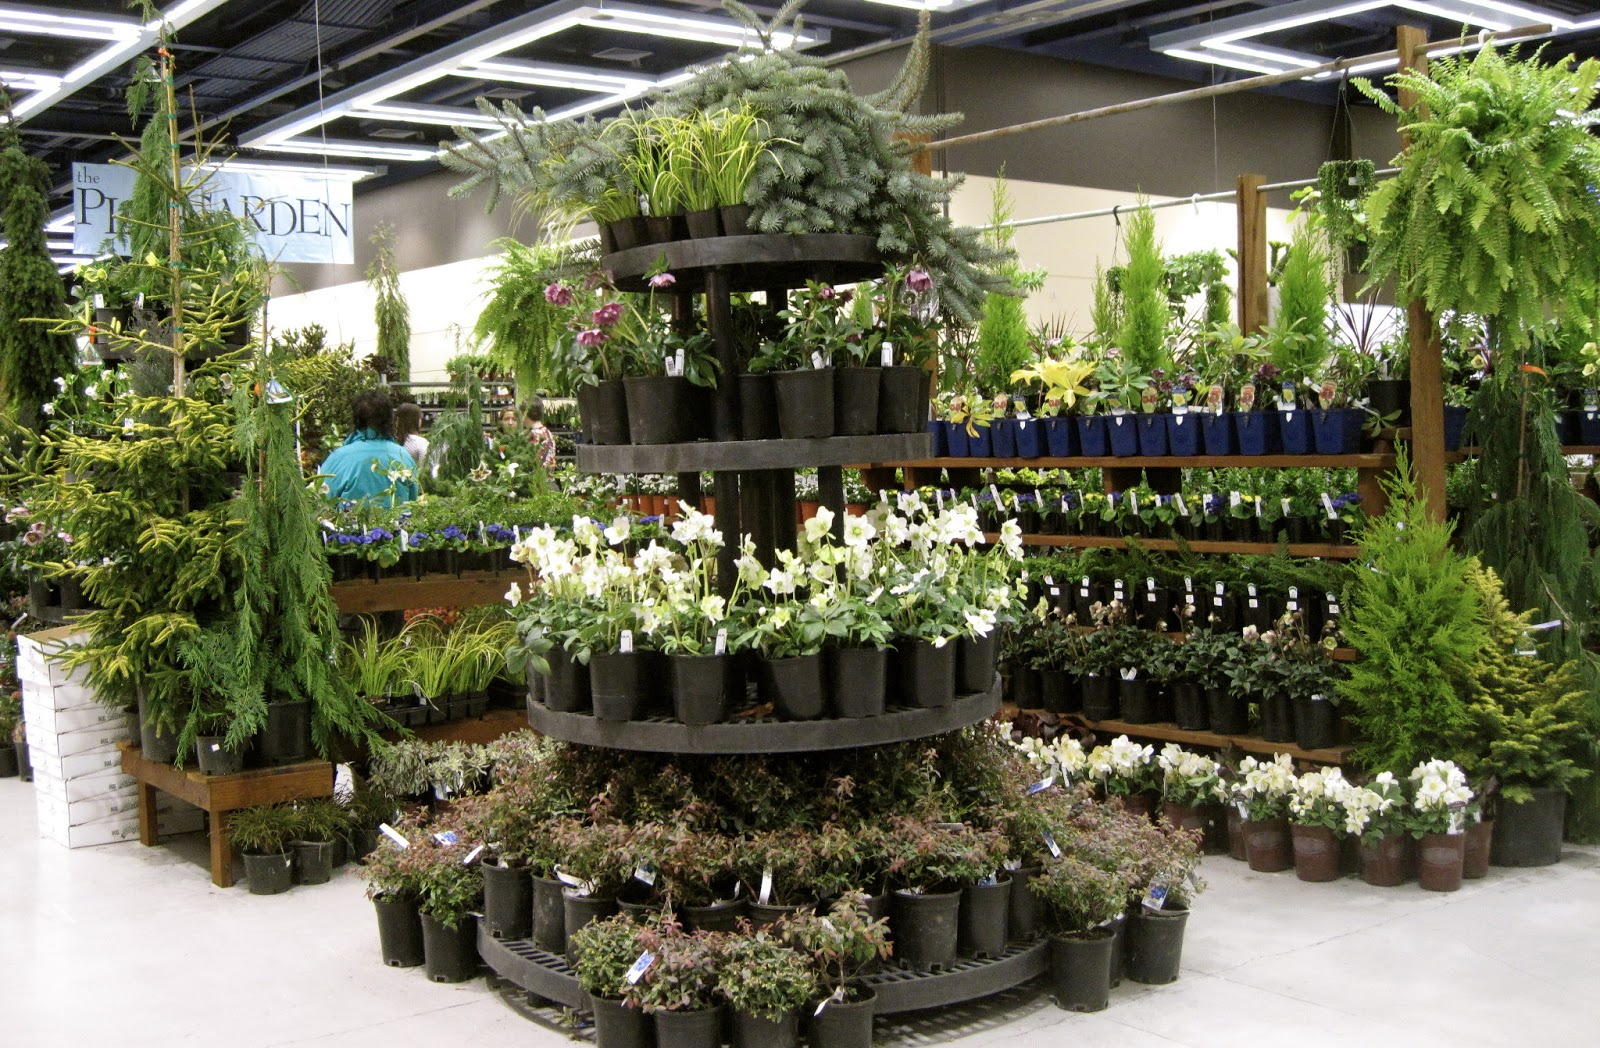 Like Its Display At The Tacoma Home And Garden Show, Bark And Garden Had A  Beautifully Laid Out And Large Display Of Plants For Sale